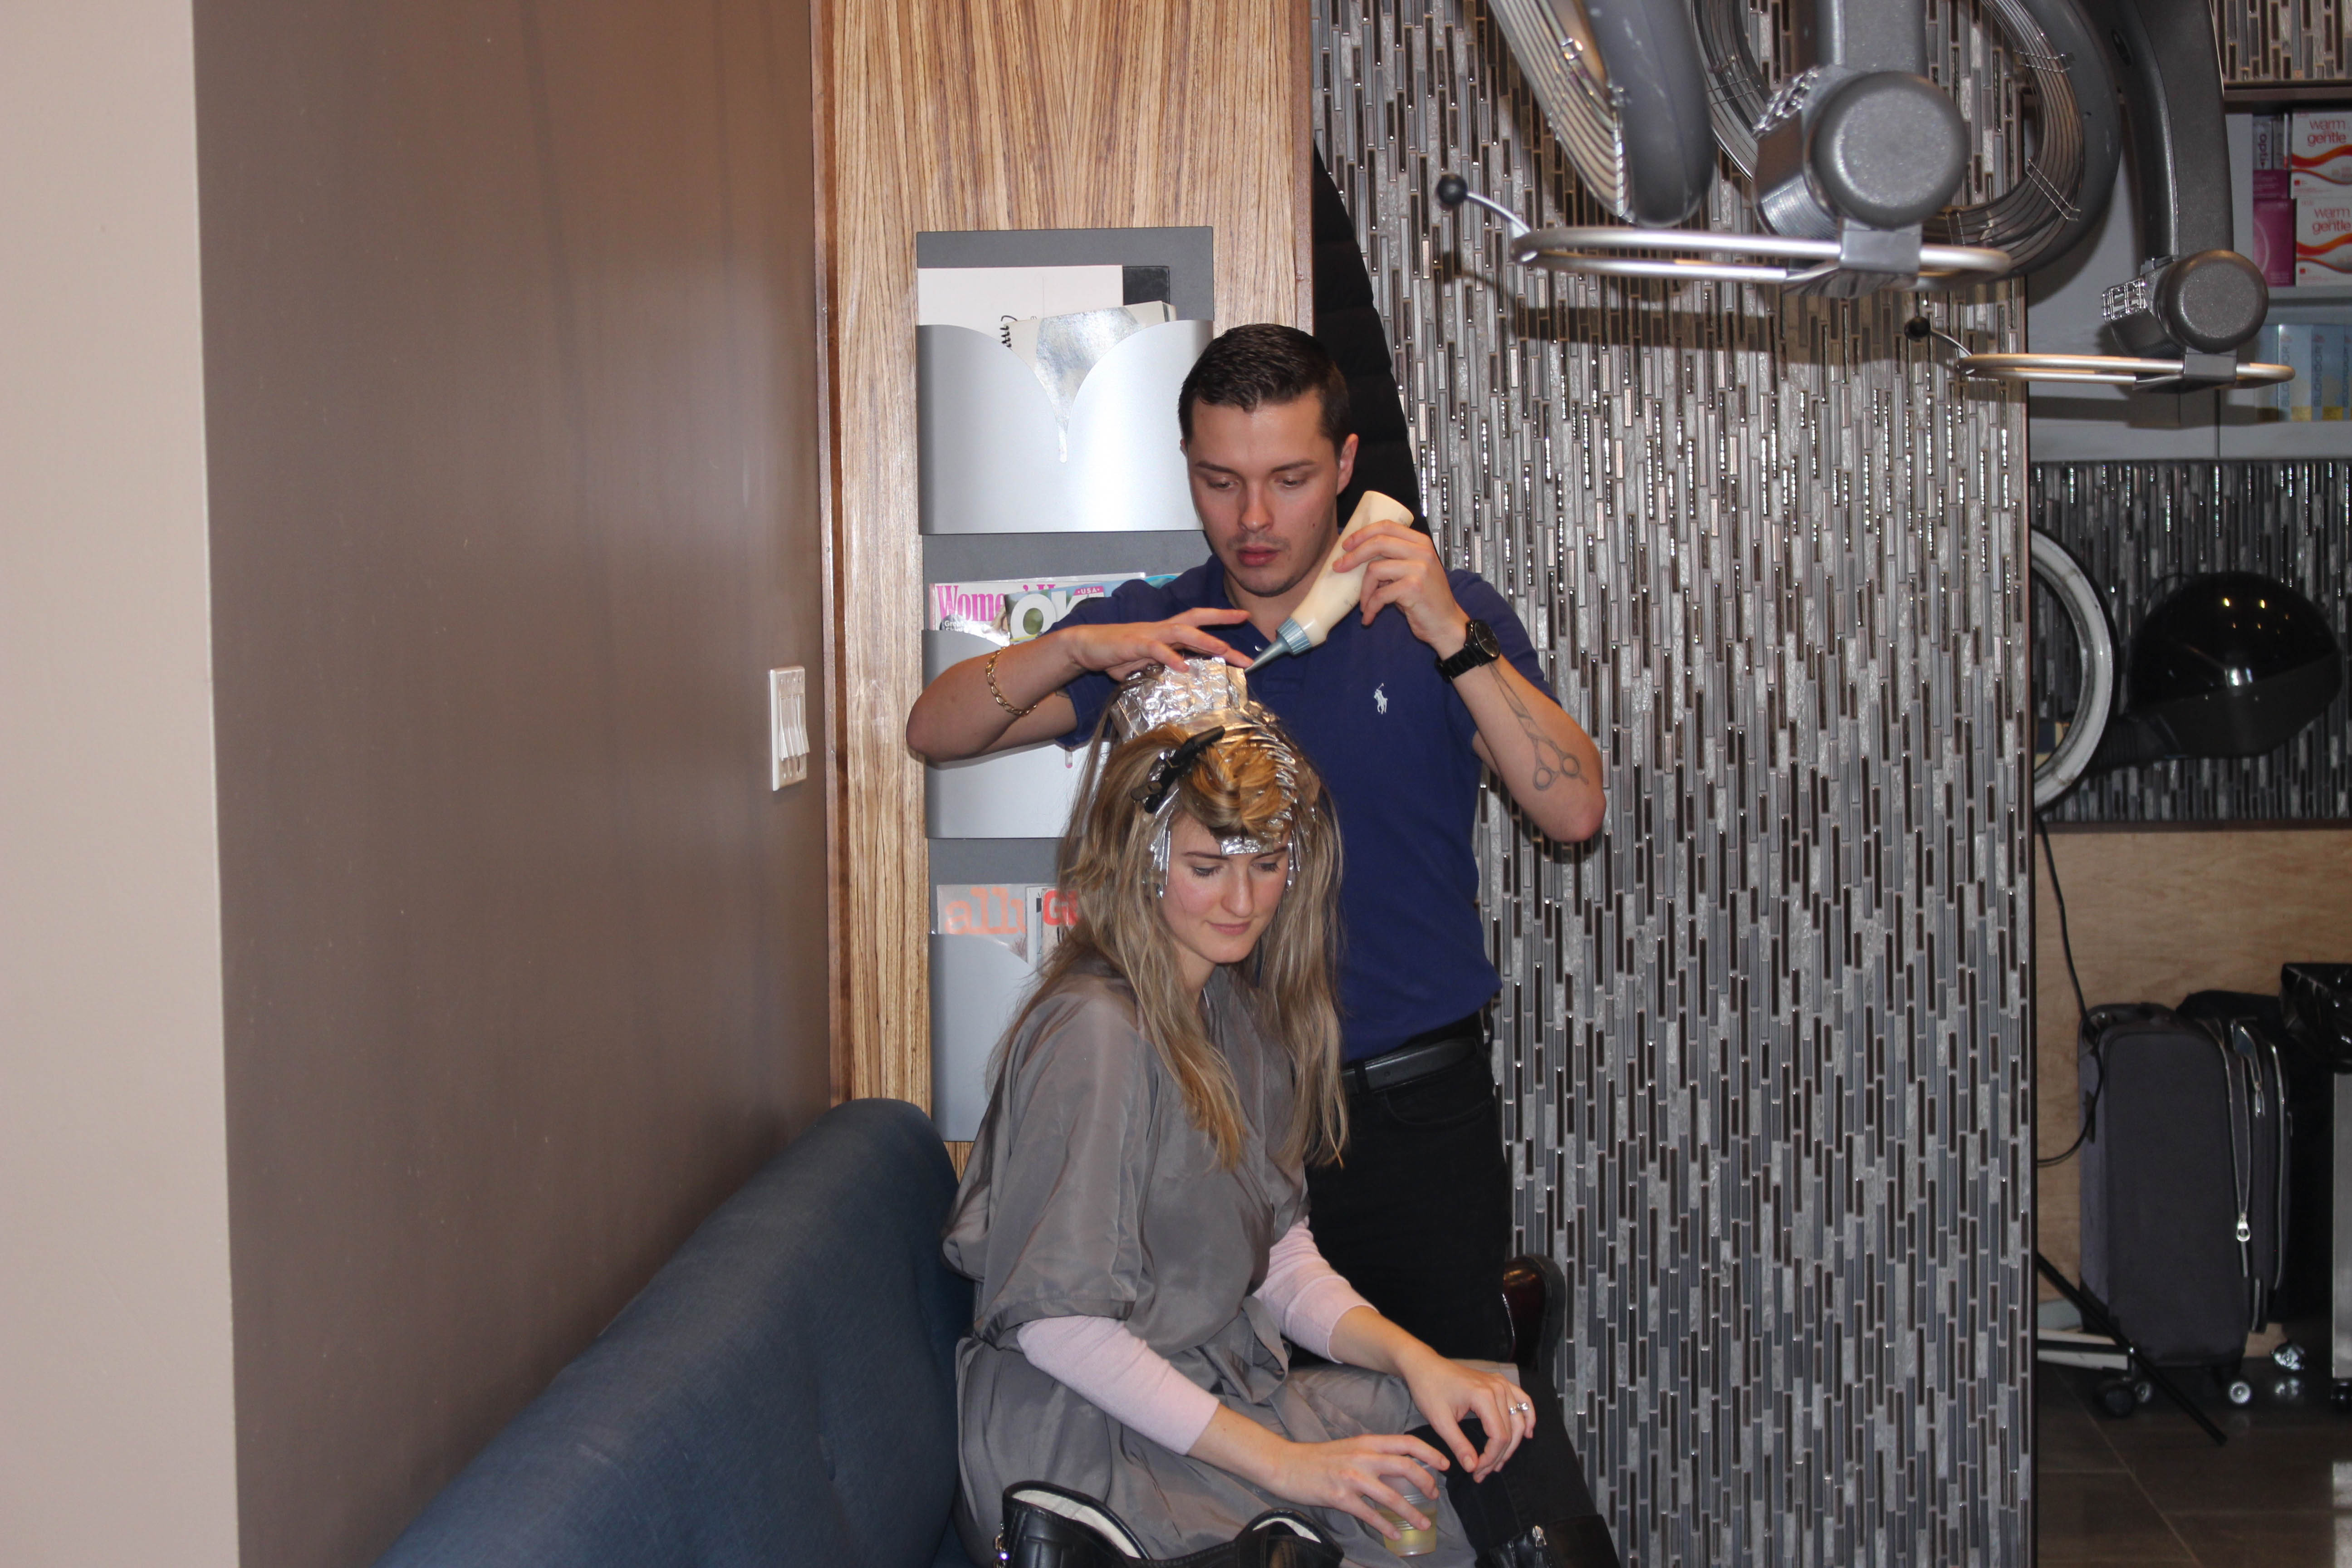 French chic hair styling at Salon Acote in Boston